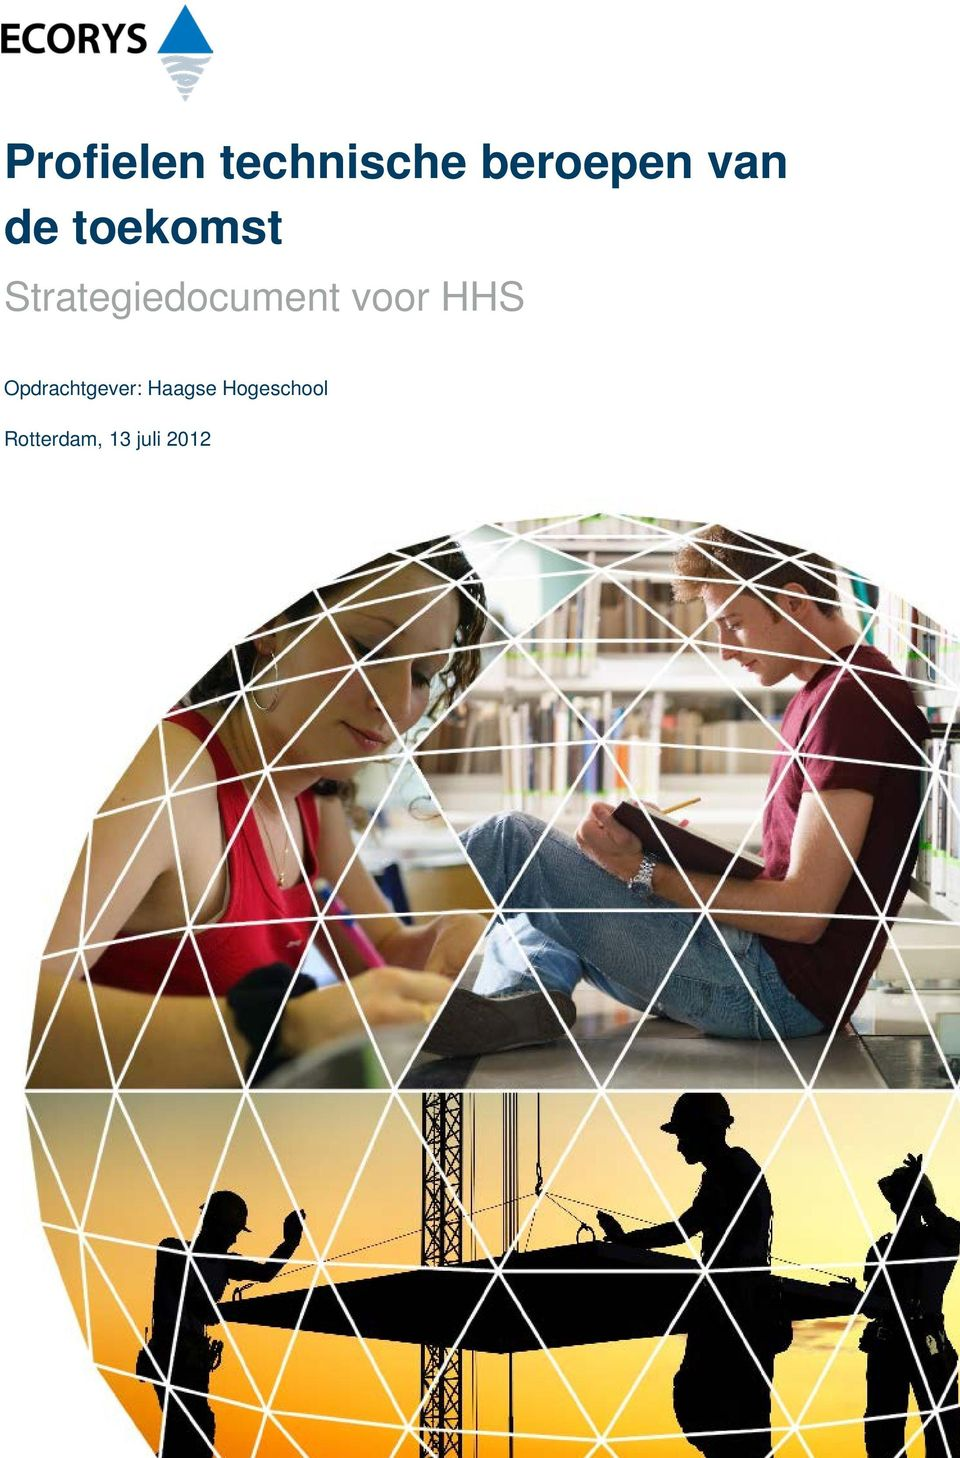 Strategiedocument voor HHS